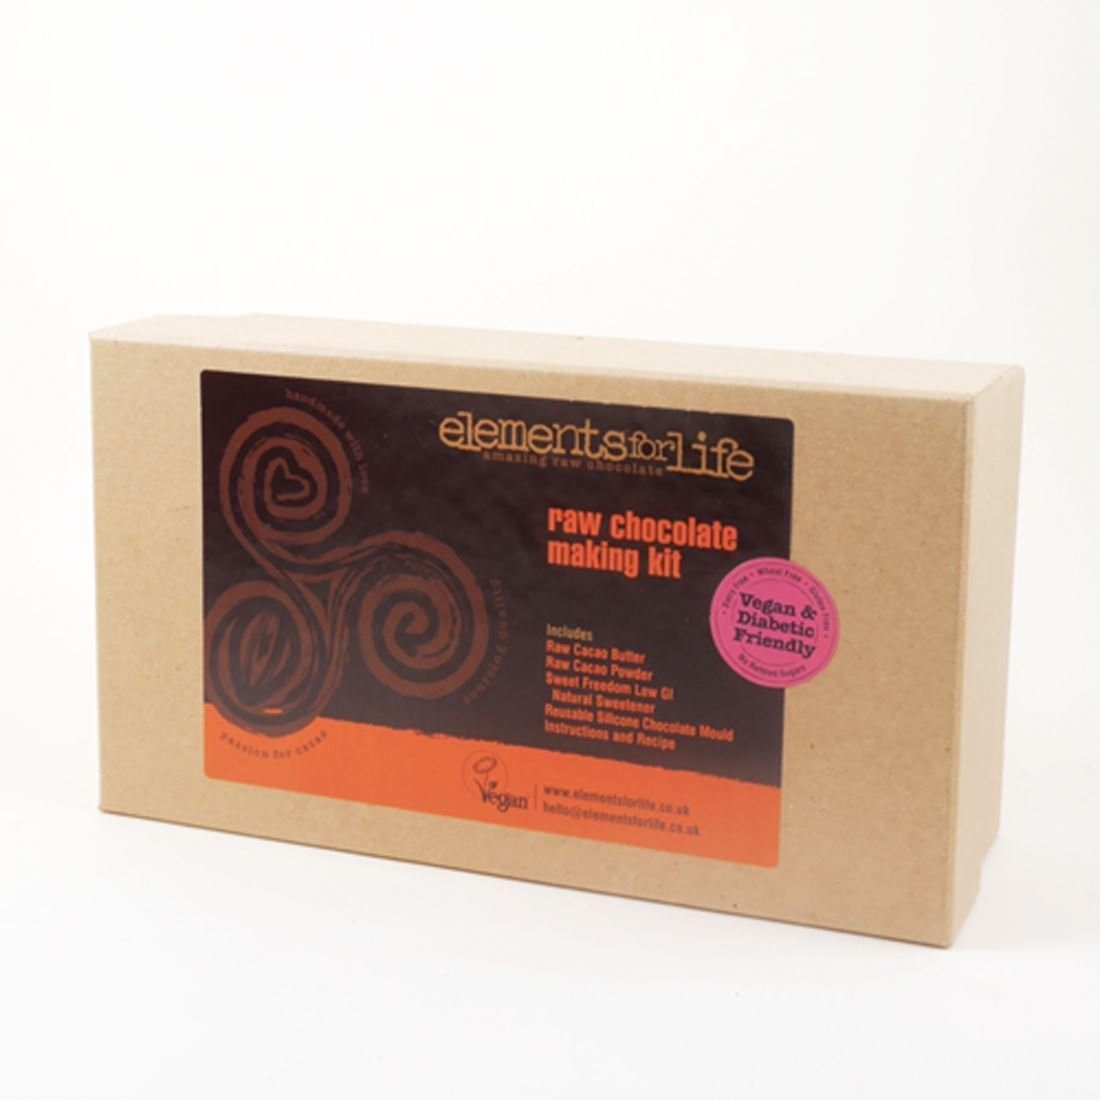 Elements For Life Raw Chocolate Making Kit 8 X 670g